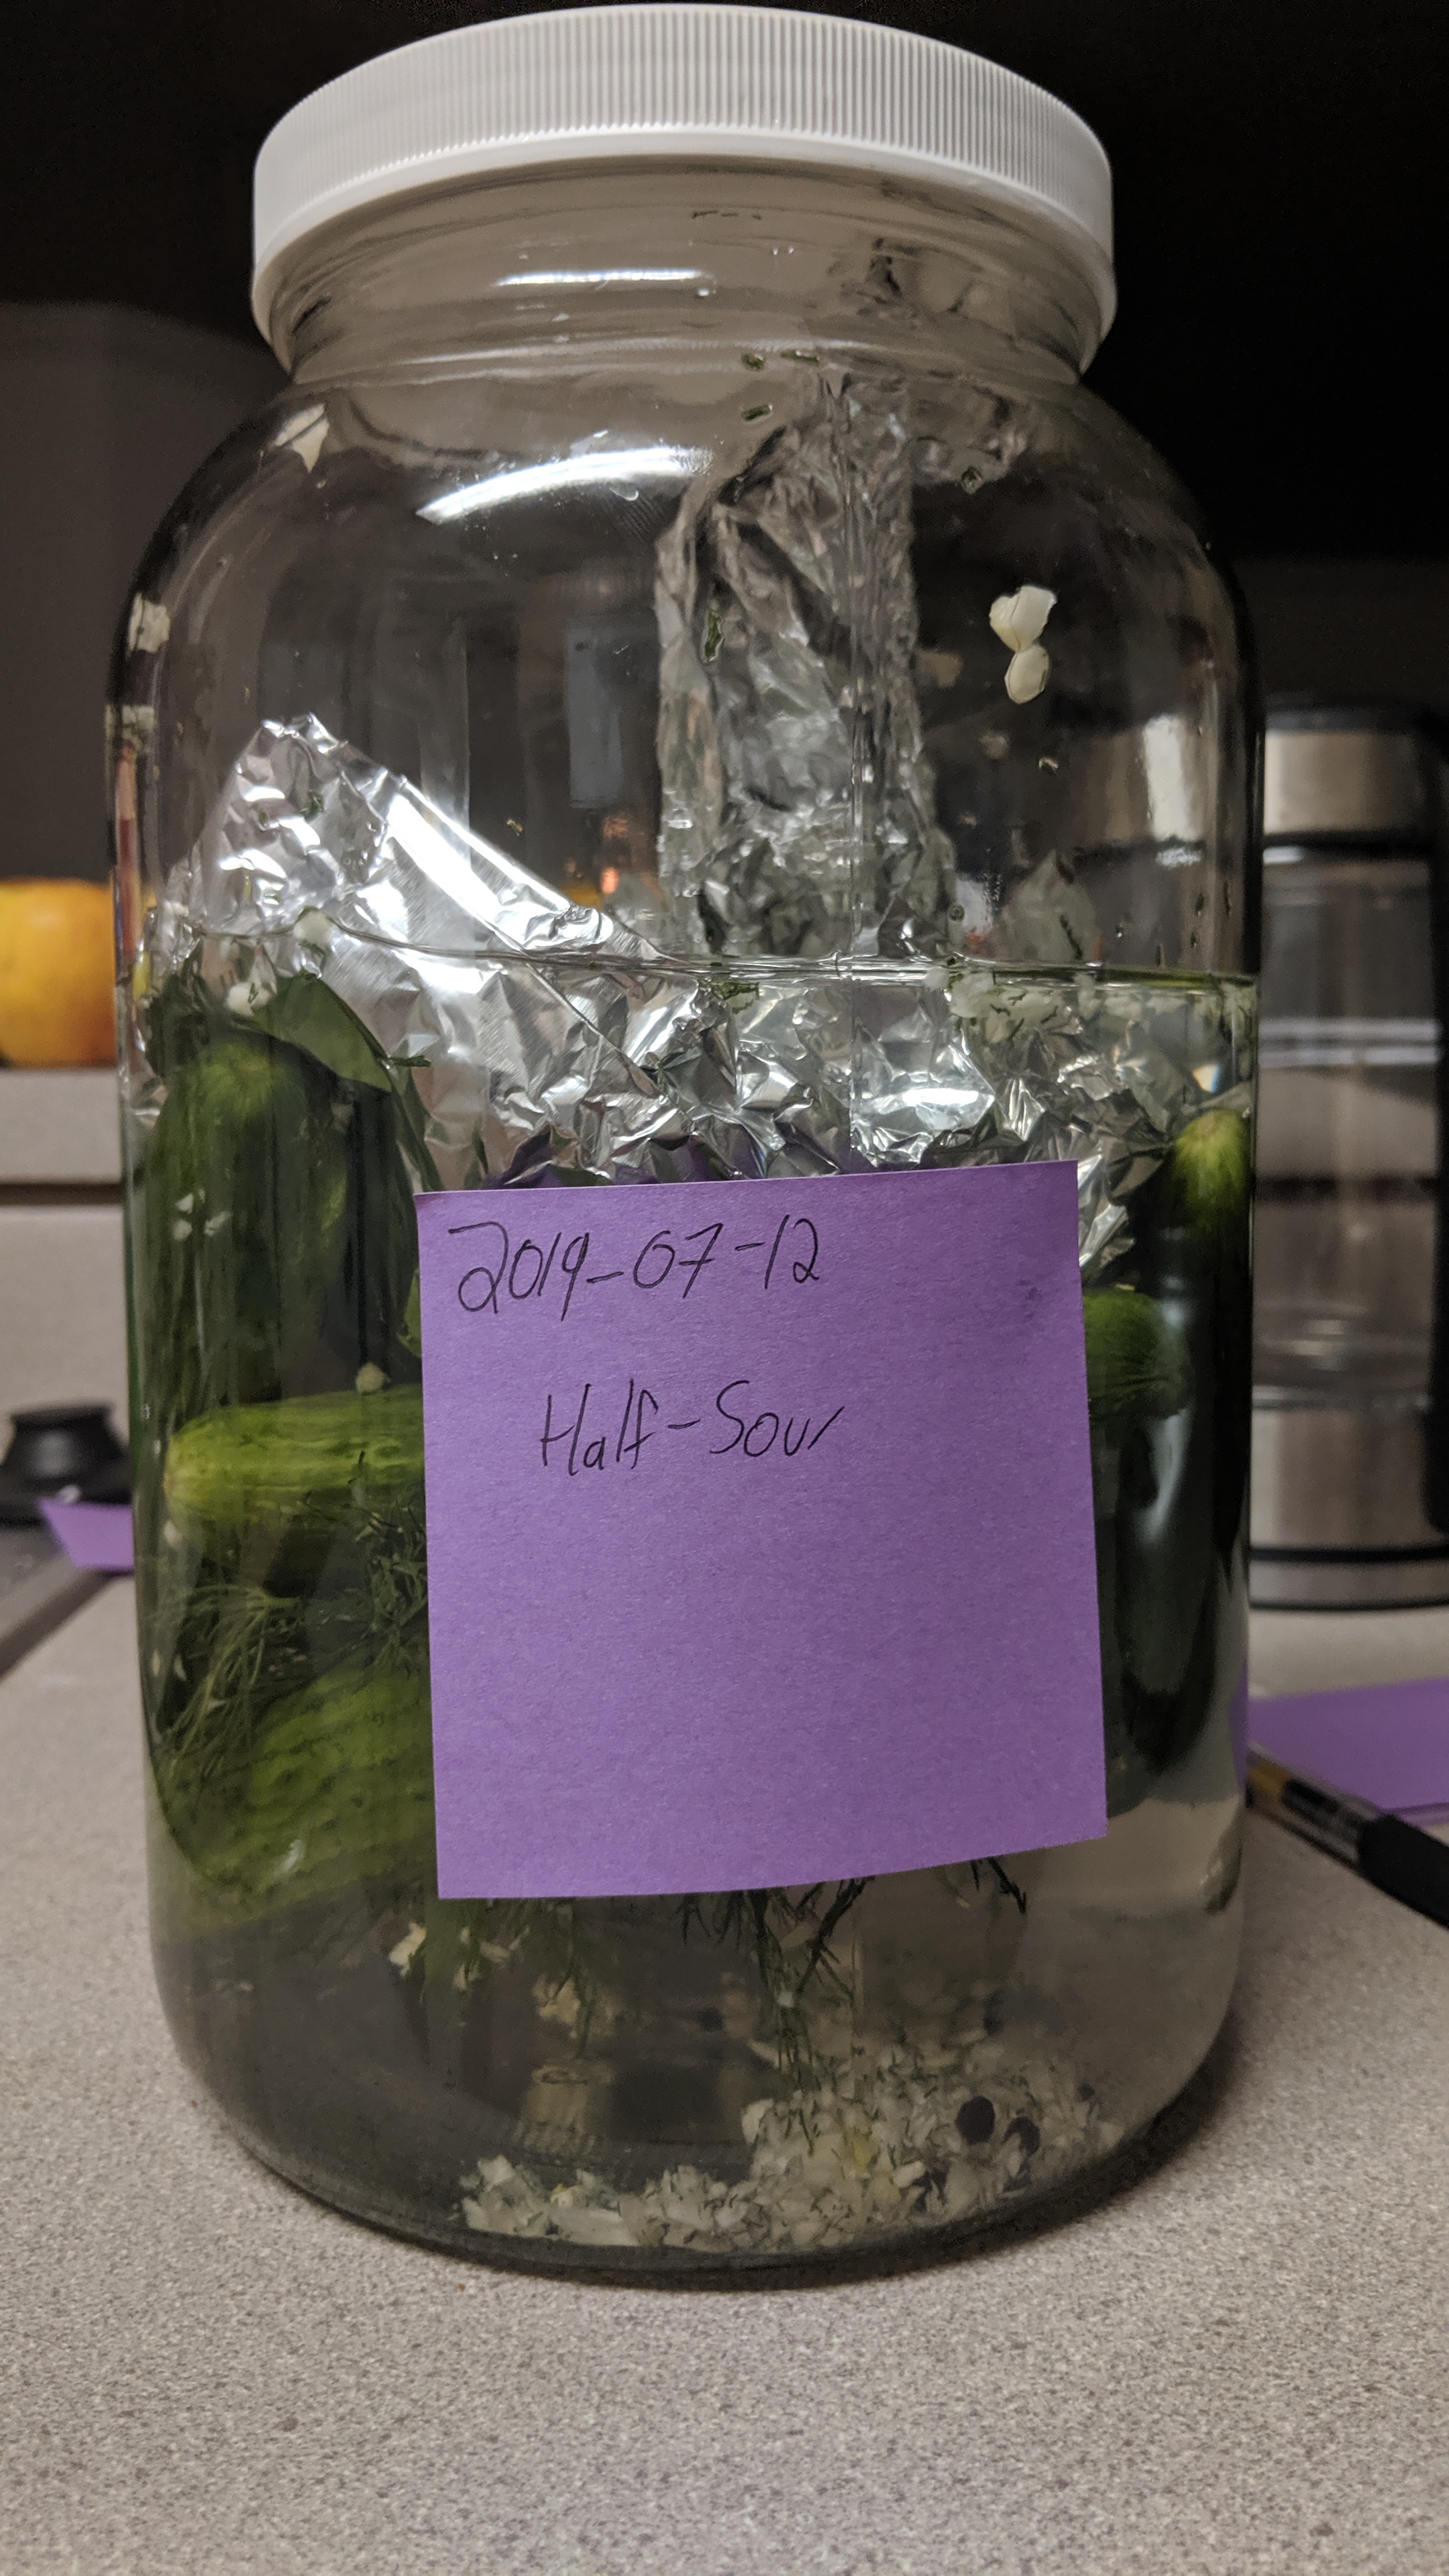 Half-sour Pickles